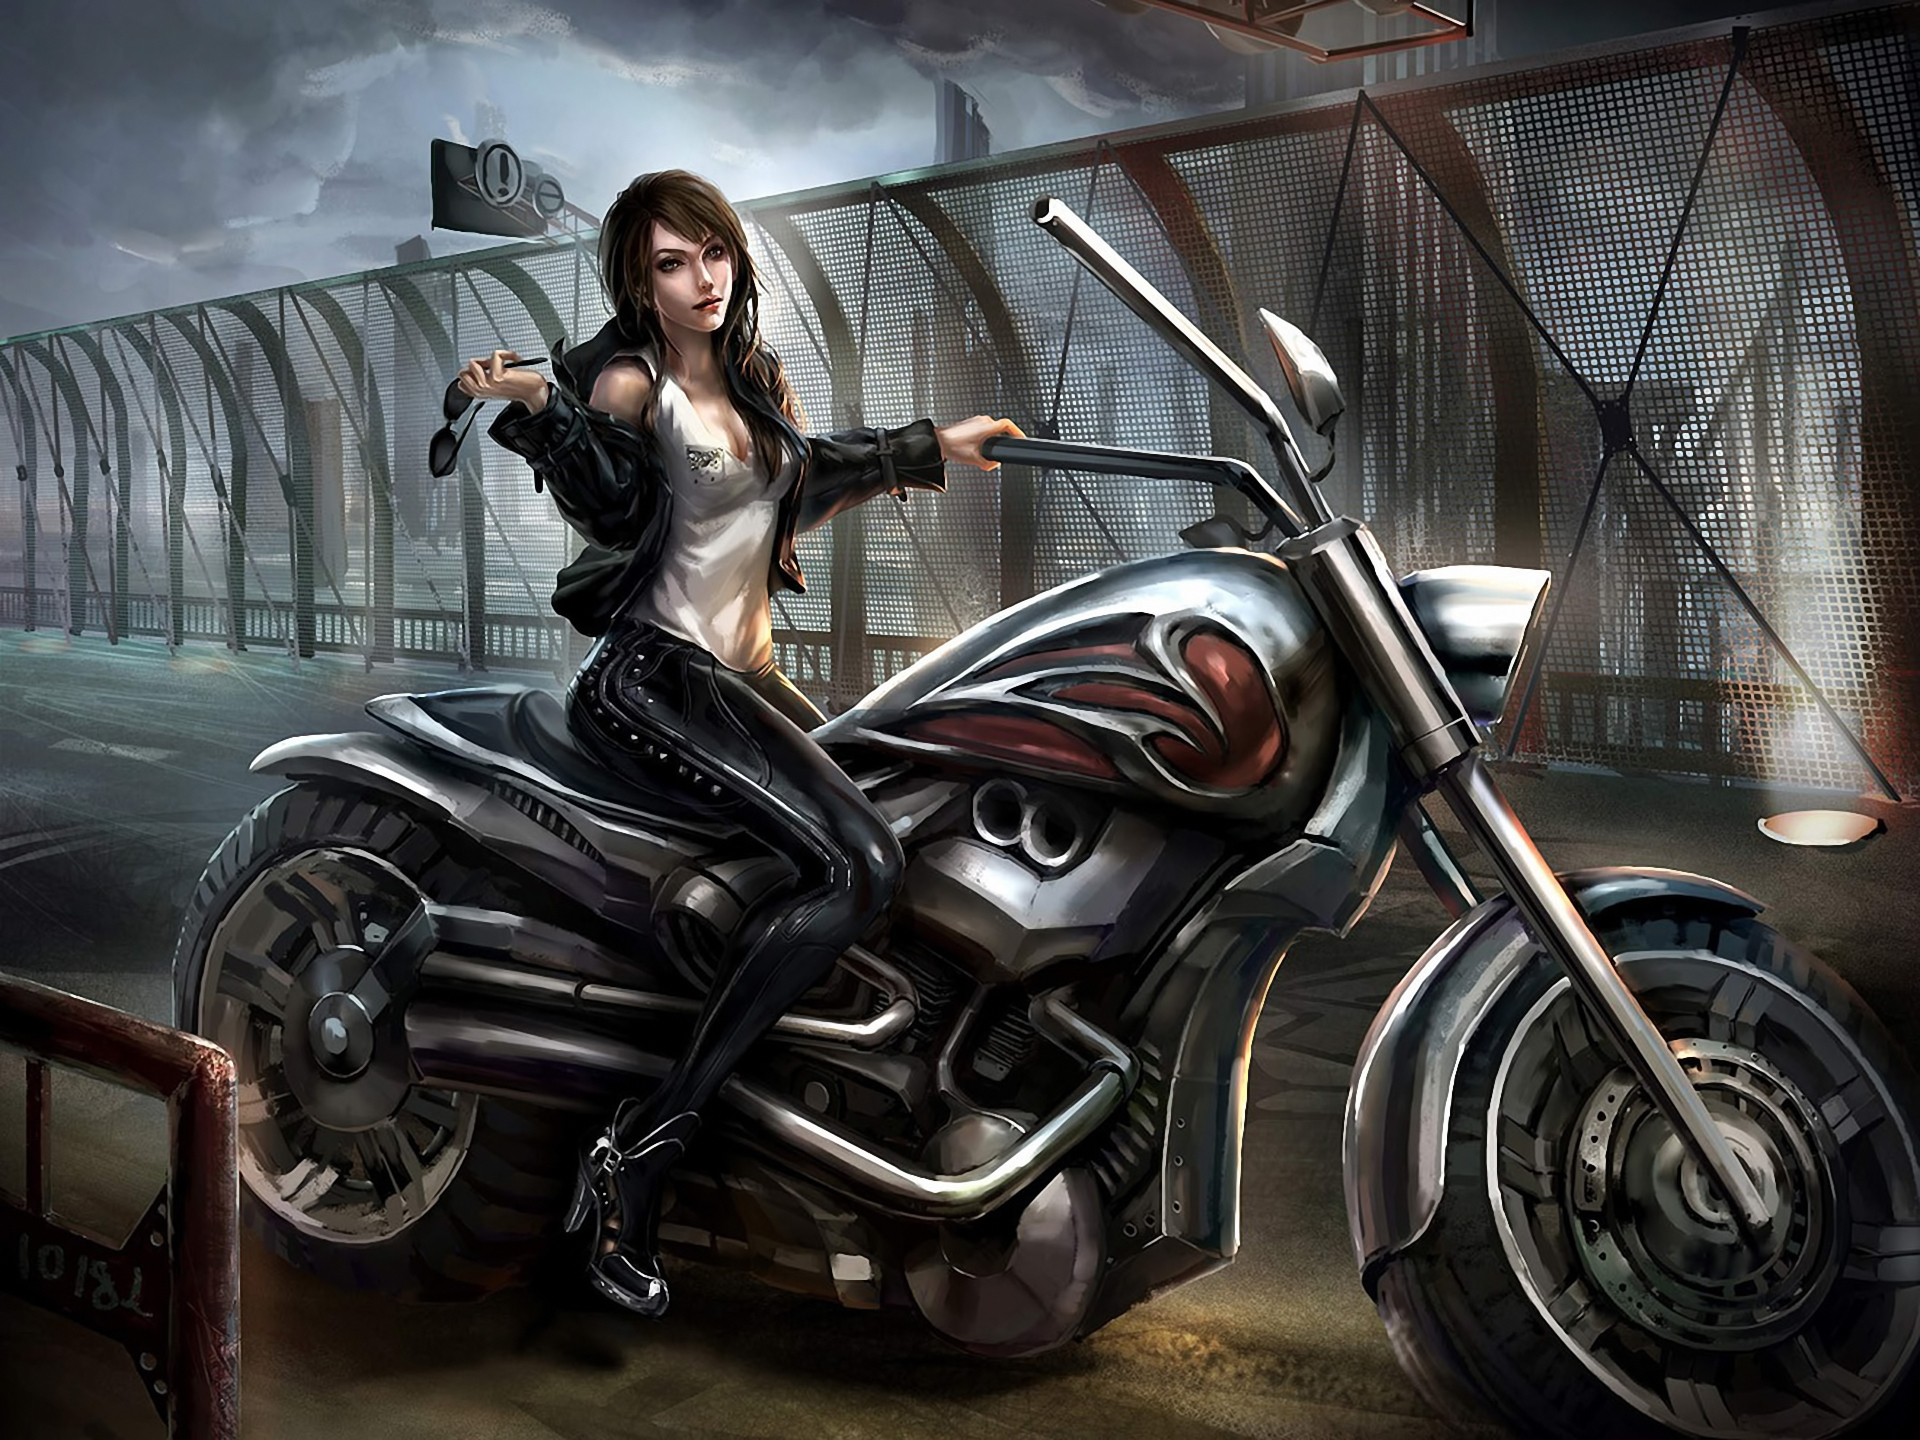 woman with heavy bikes wallpapers - photo #30